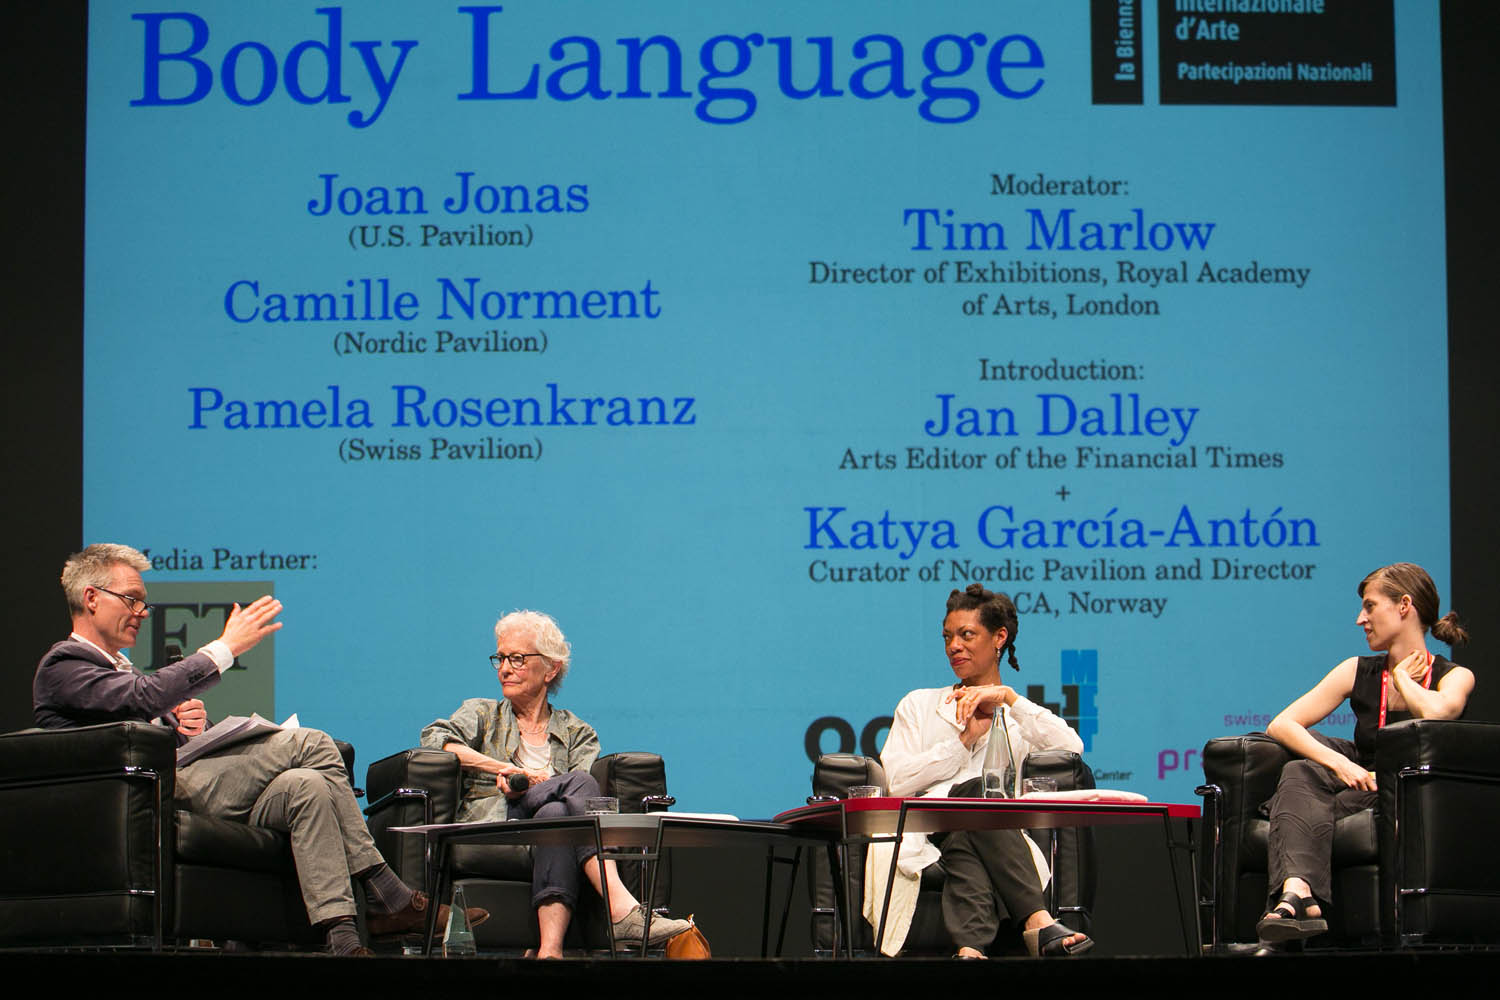 Body Language - The First Cross-Pavilion Artist Talk at La Biennale di Venezia